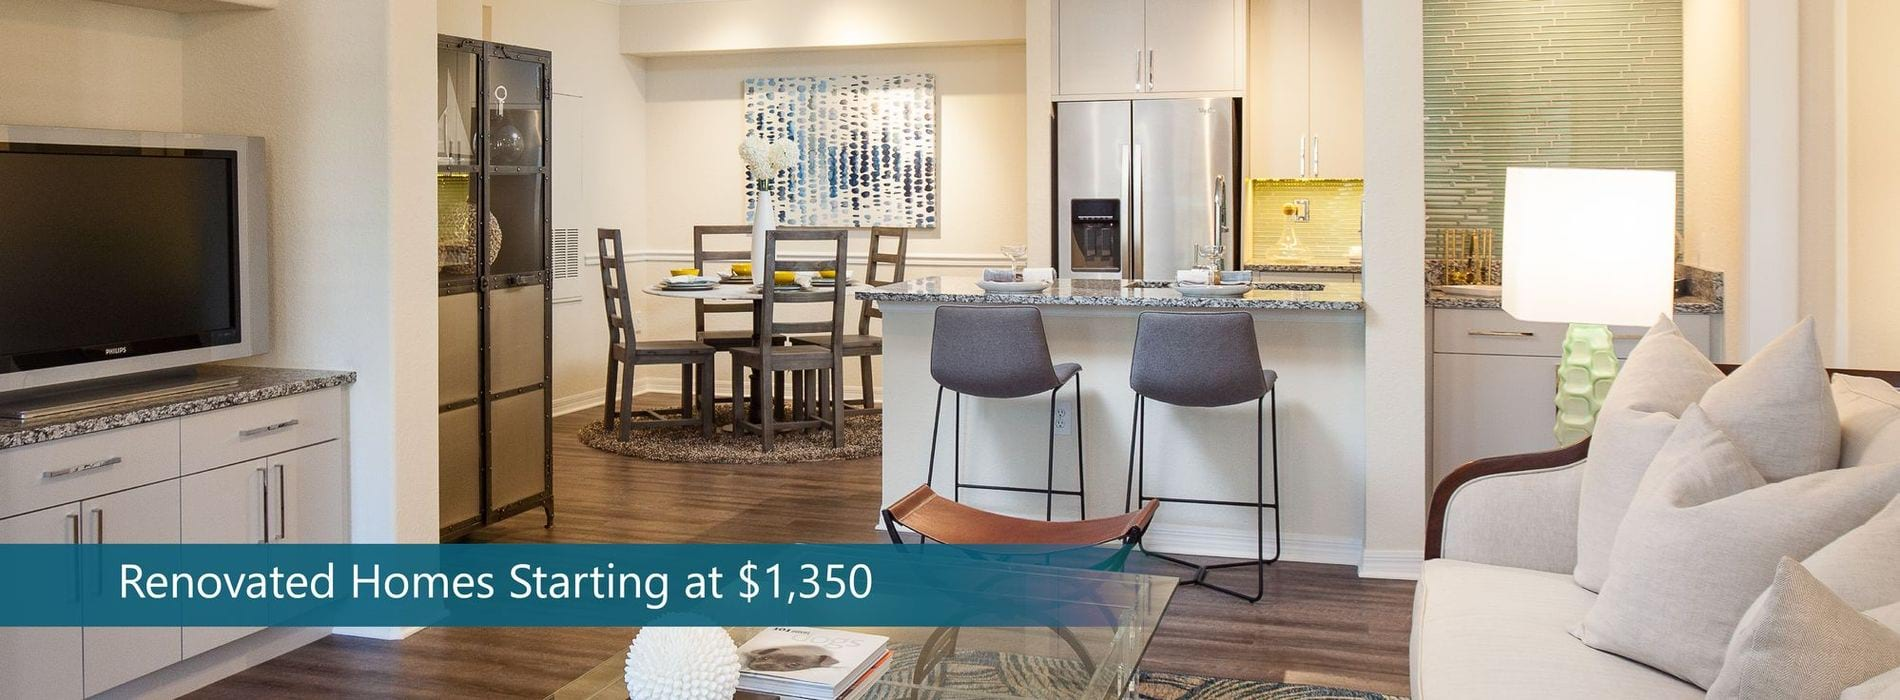 apartments for rent in west palm beach fl portofino place home